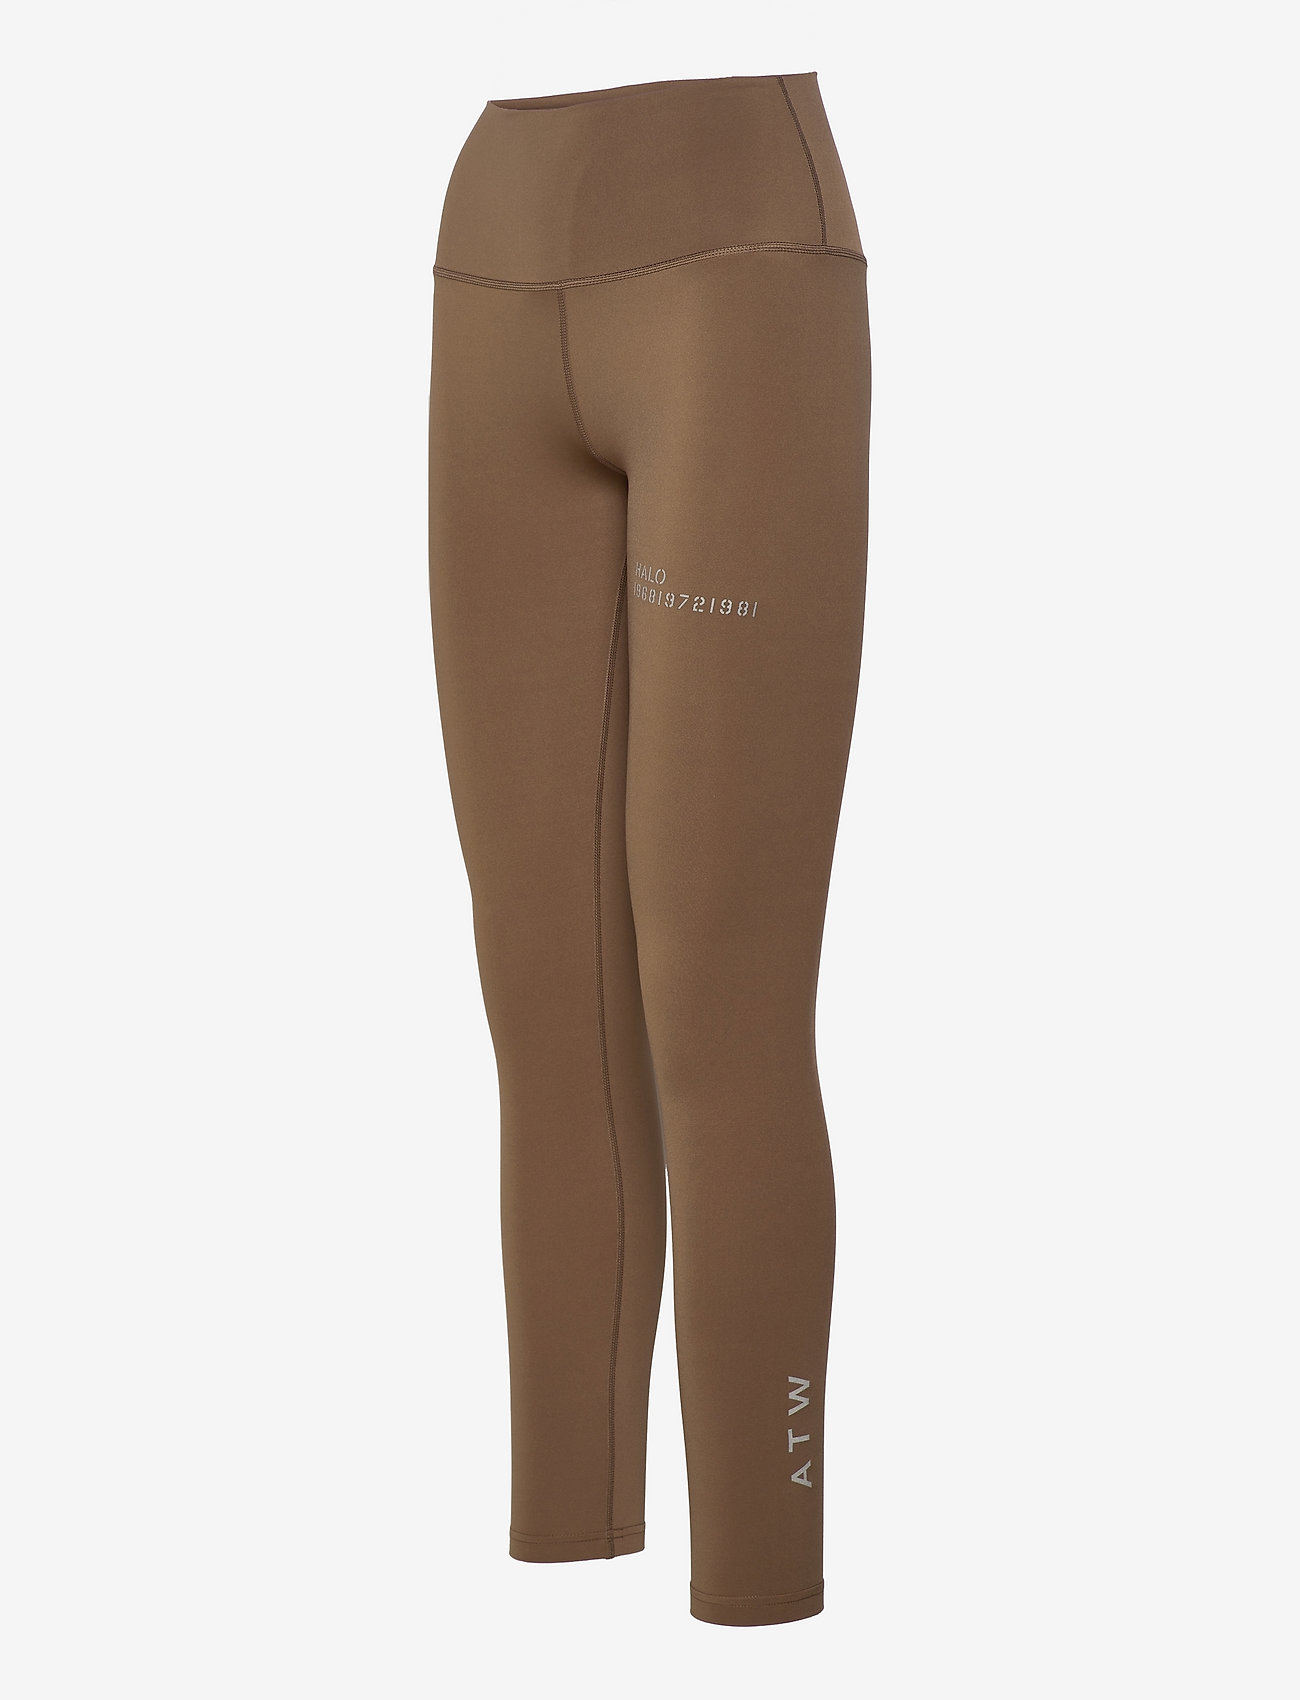 HALO - HALO WOMENS HIGHRISE TIGHTS - tights & shorts - vintage brown - 3